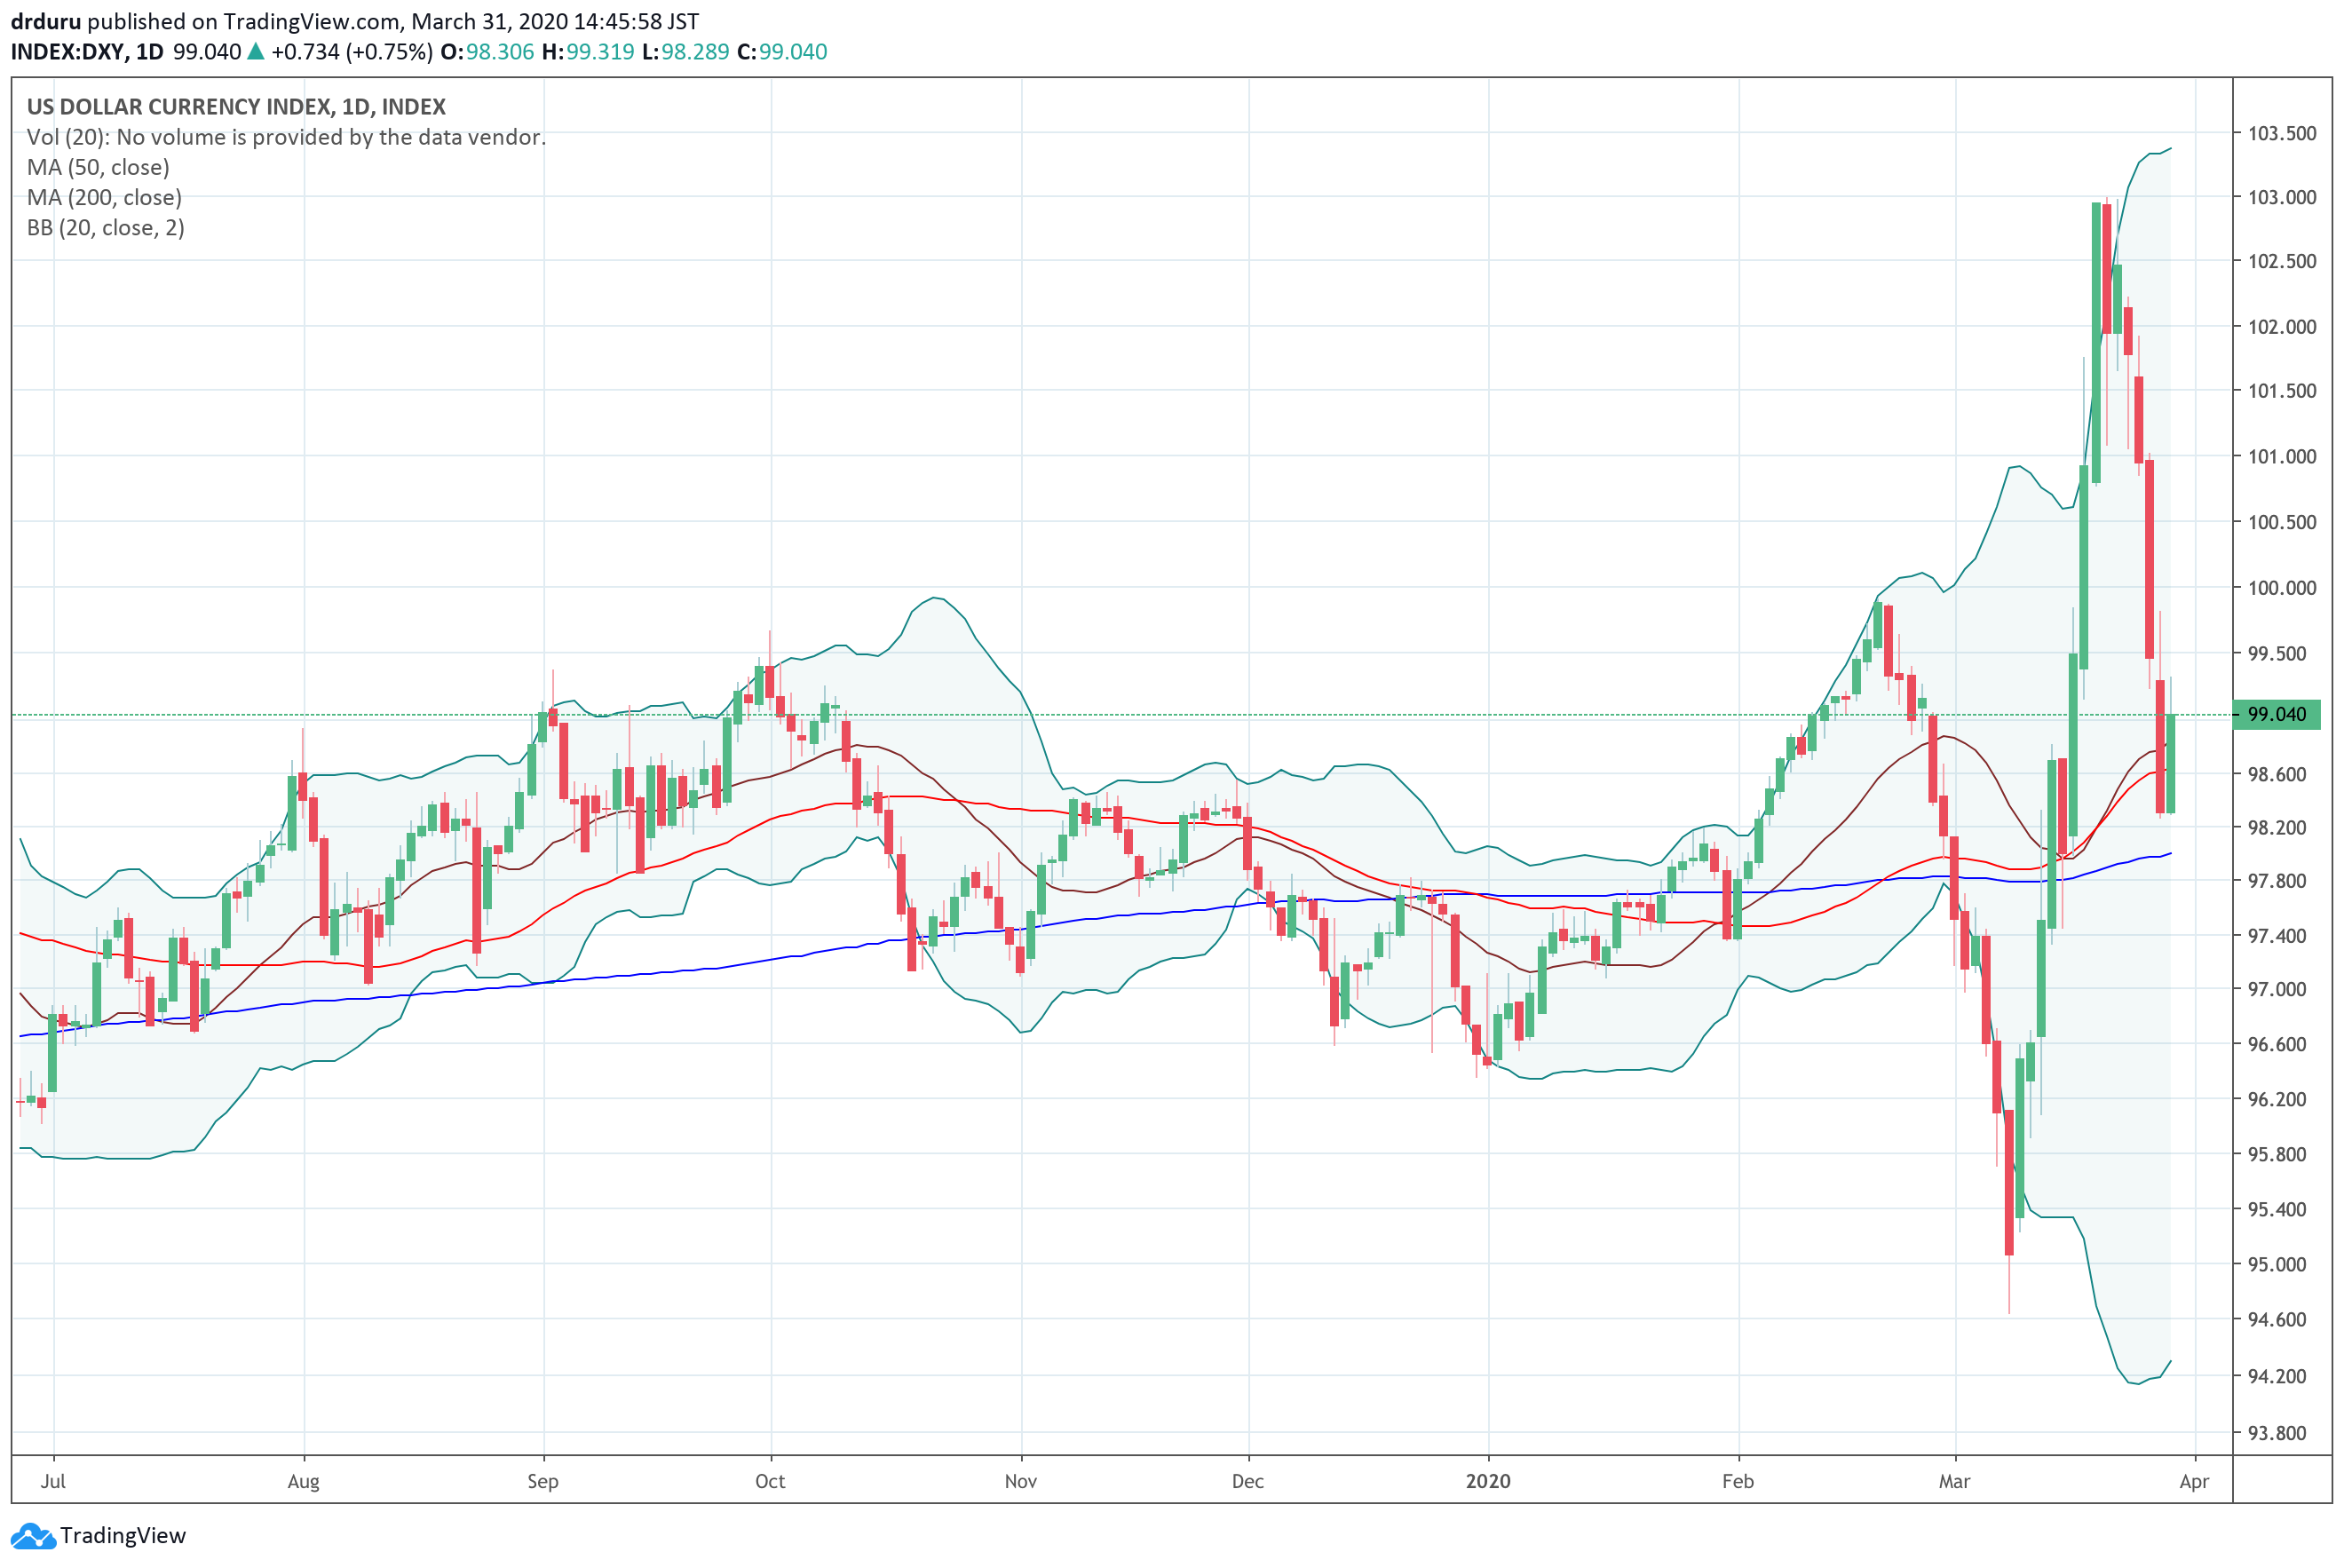 The U.S. dollar index (DXY) has experienced unusually high amount of volatility with steep and extended moves both down and up.